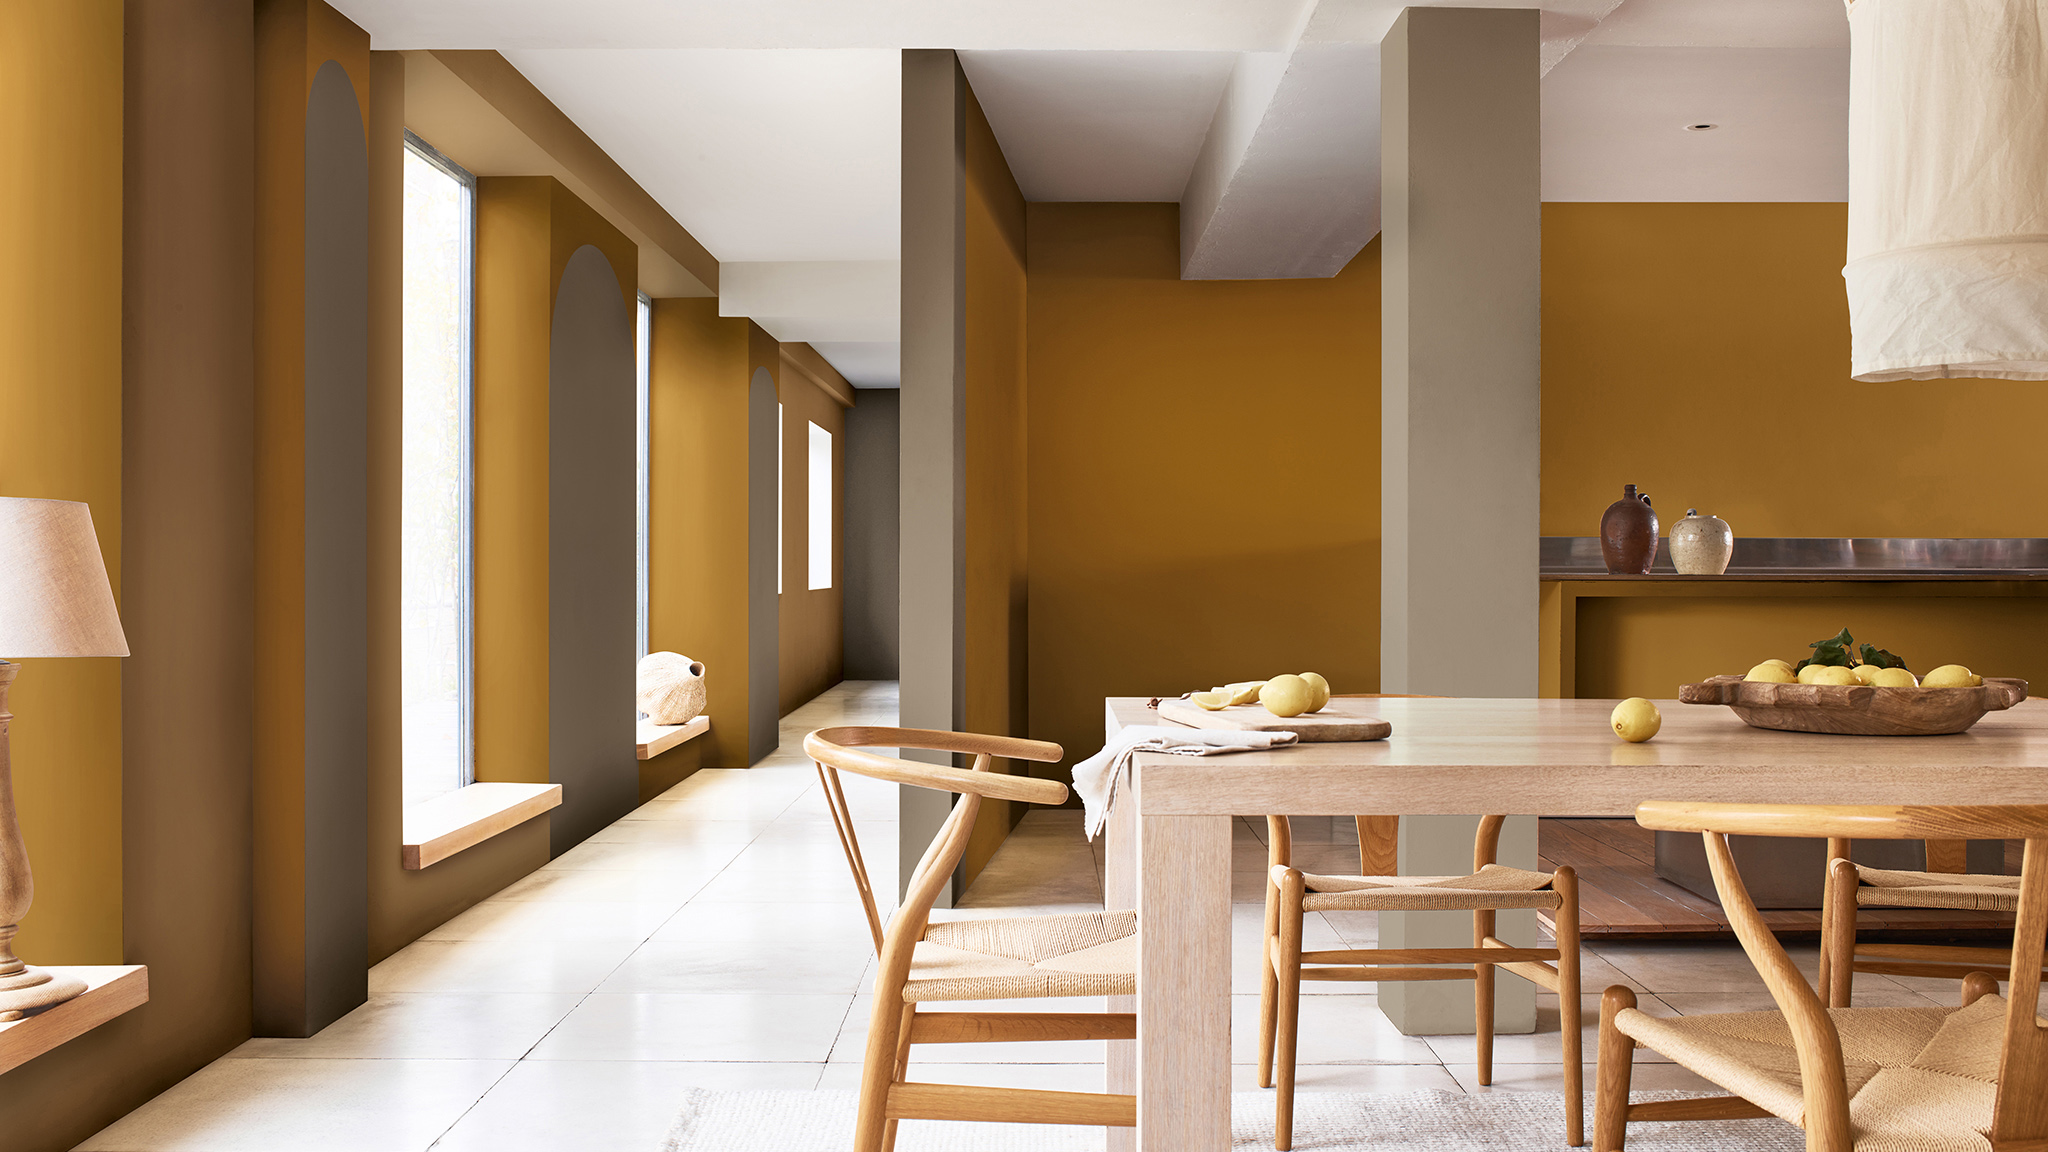 Dulux_CF21_how-to_arch_dining room with windows_Global_5